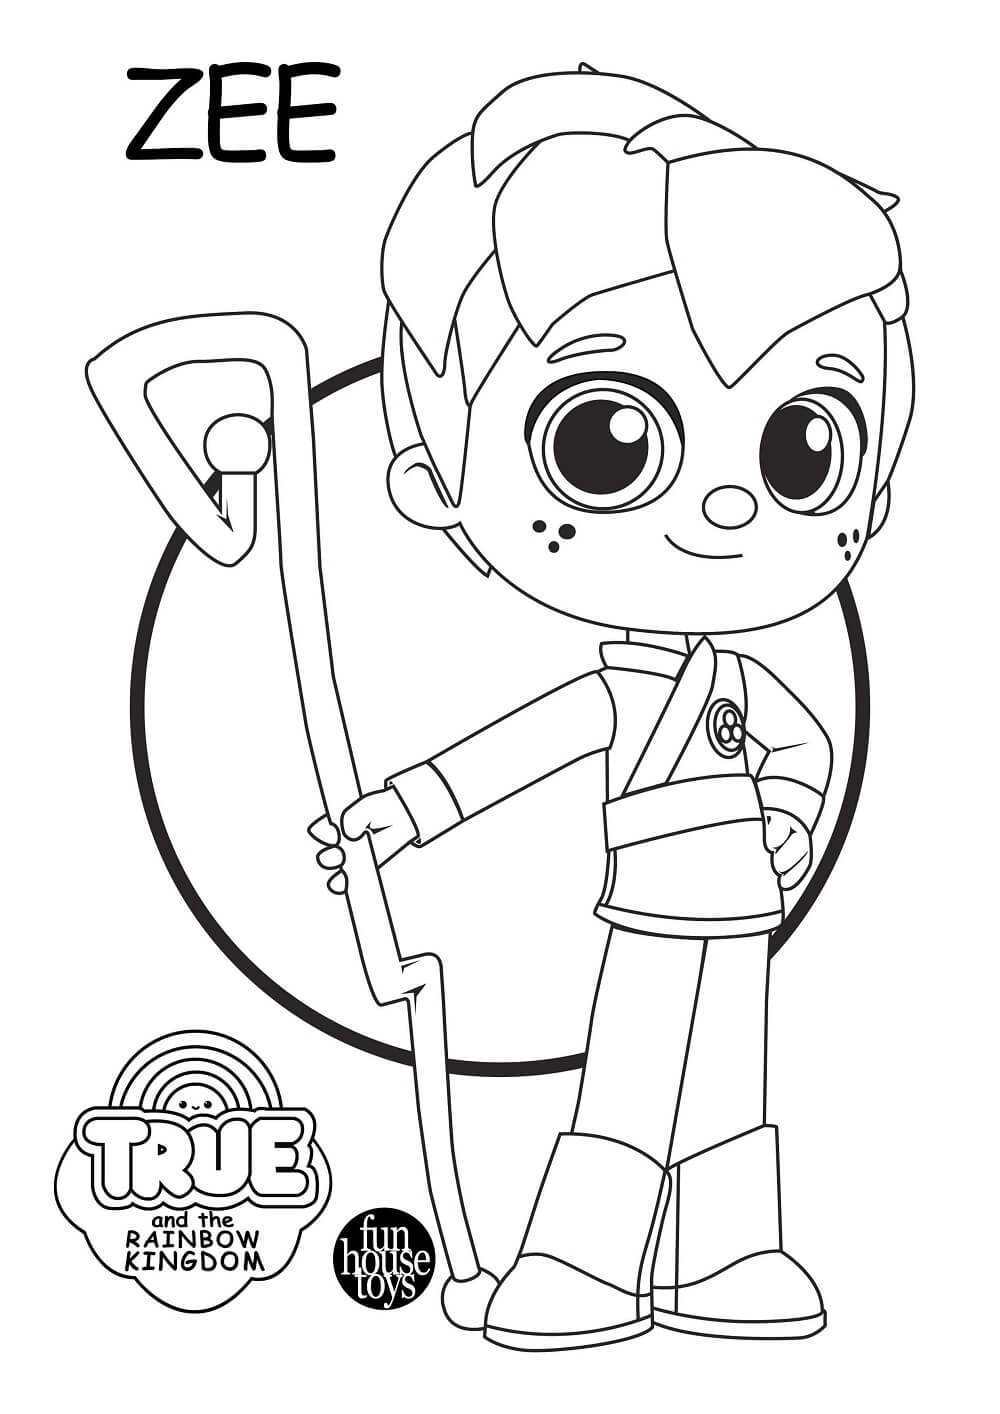 rainbow kingdom coloring pages free true and the rainbow kingdom coloring pages clip art coloring pages kingdom rainbow